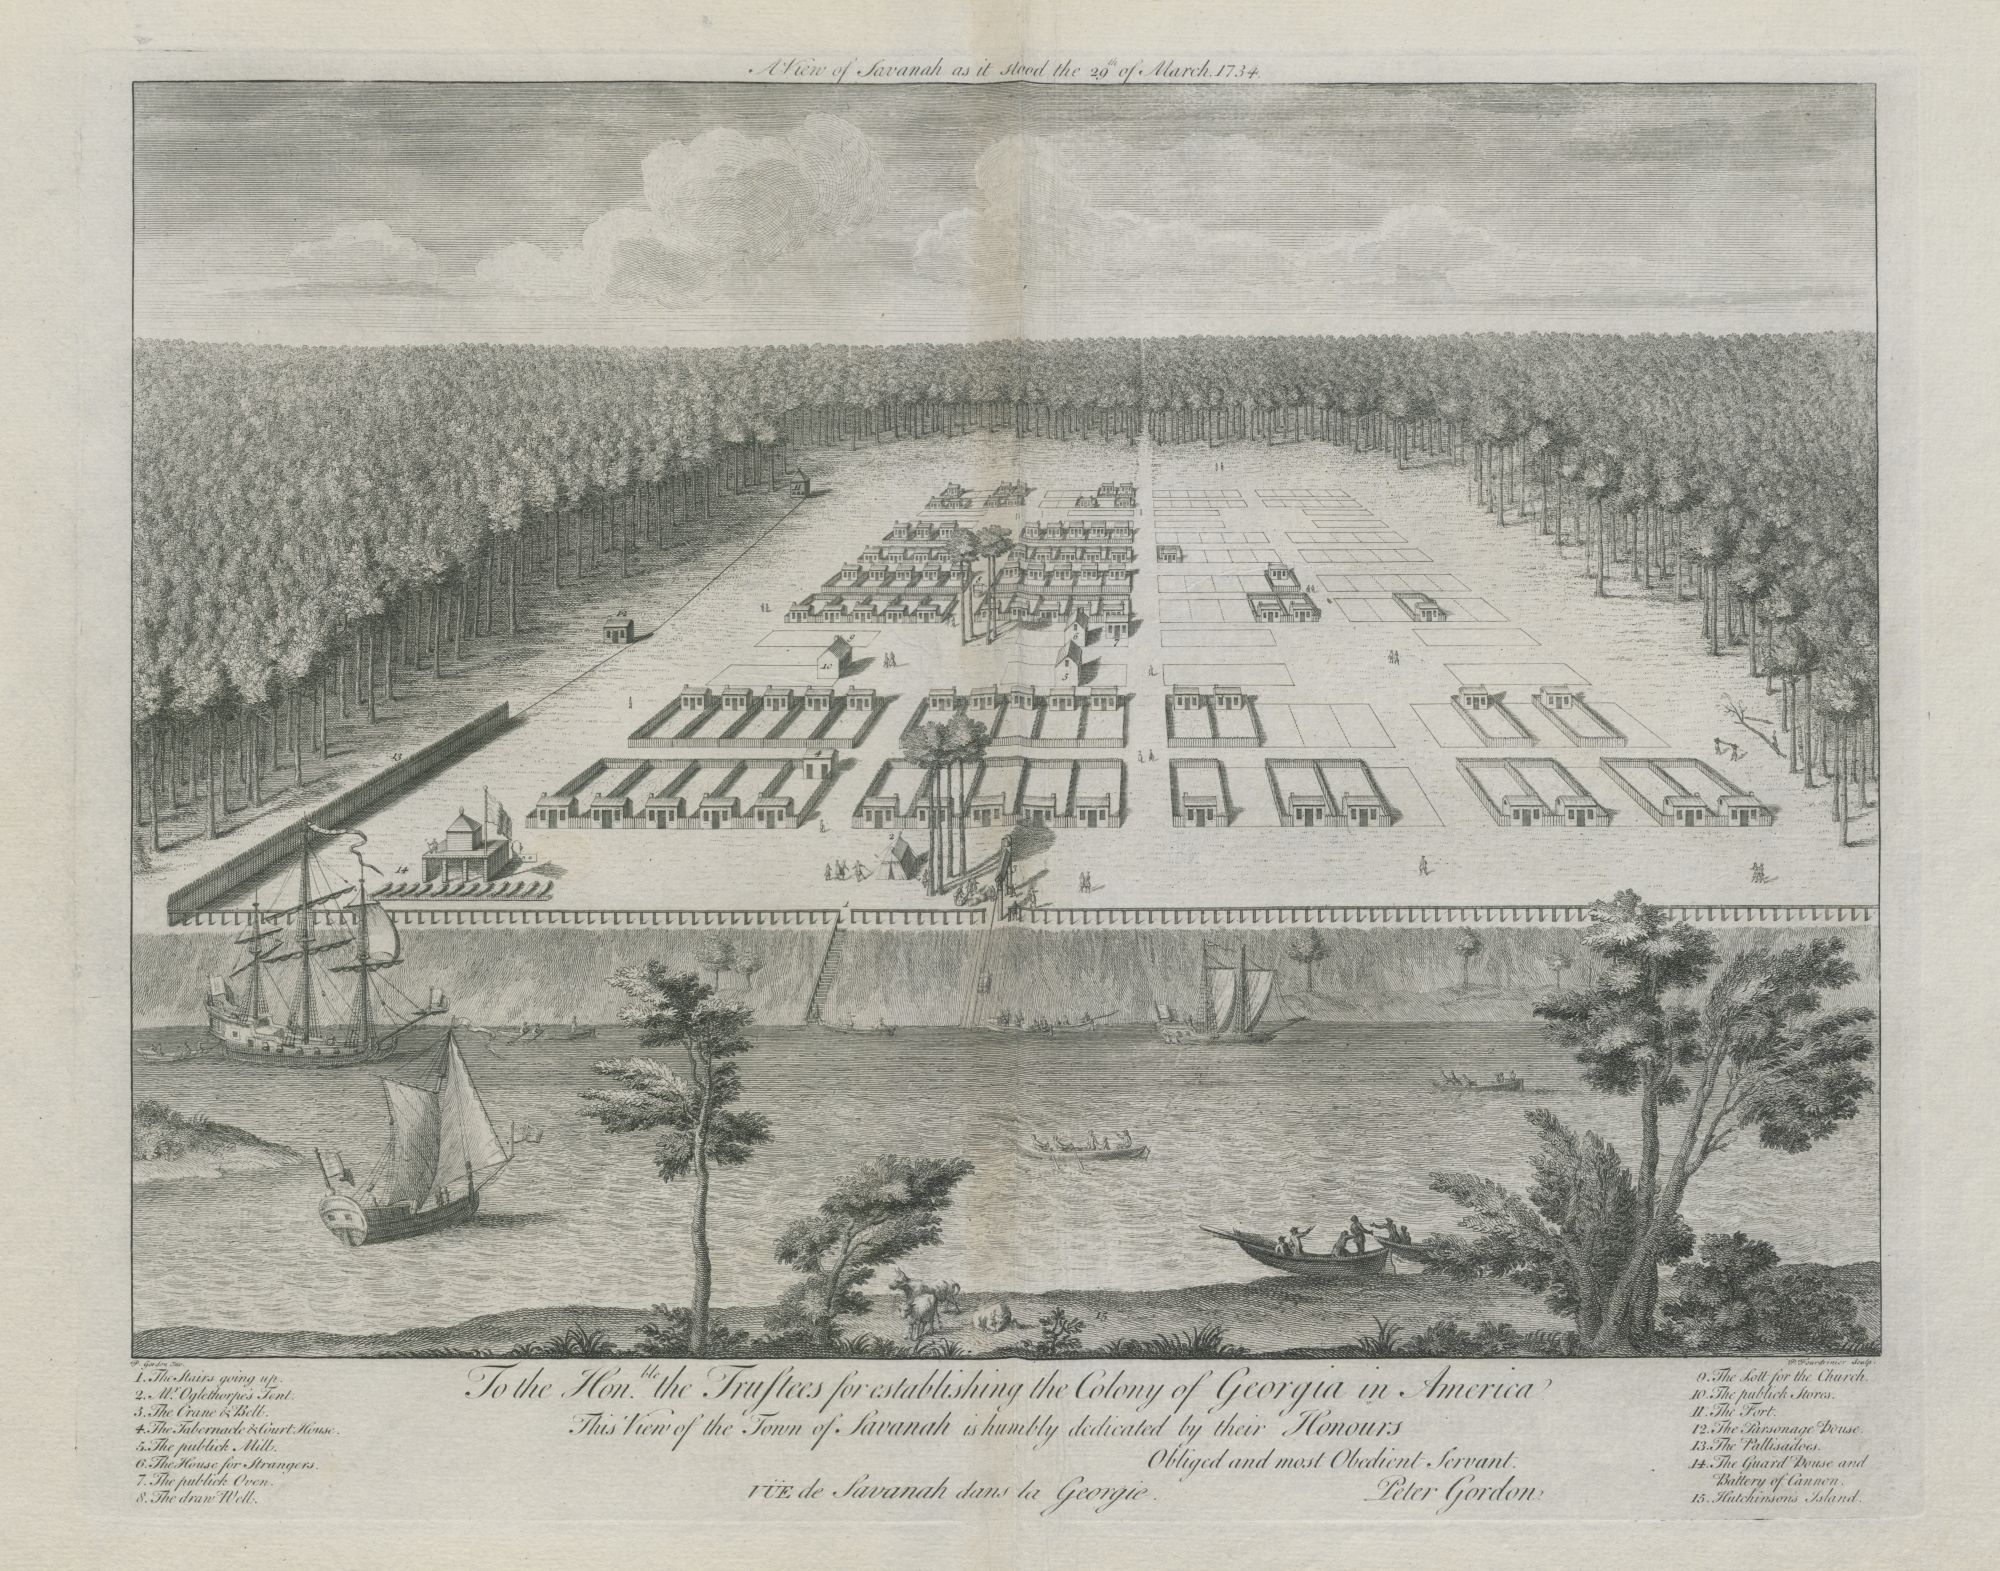 A View of Savanah as it stood the 29th of March 1734 = VÜE de Savanah dans la Georgie : To the Hon.ble the Trustees for establishing the Colony of Georgia in America This View of the Town of Savanah is humbly dedicated by their Honours Obliged and most Obedient Servant Peter Gordon. / P. Gordon Inv. ; P. Fourdrinier Sculp